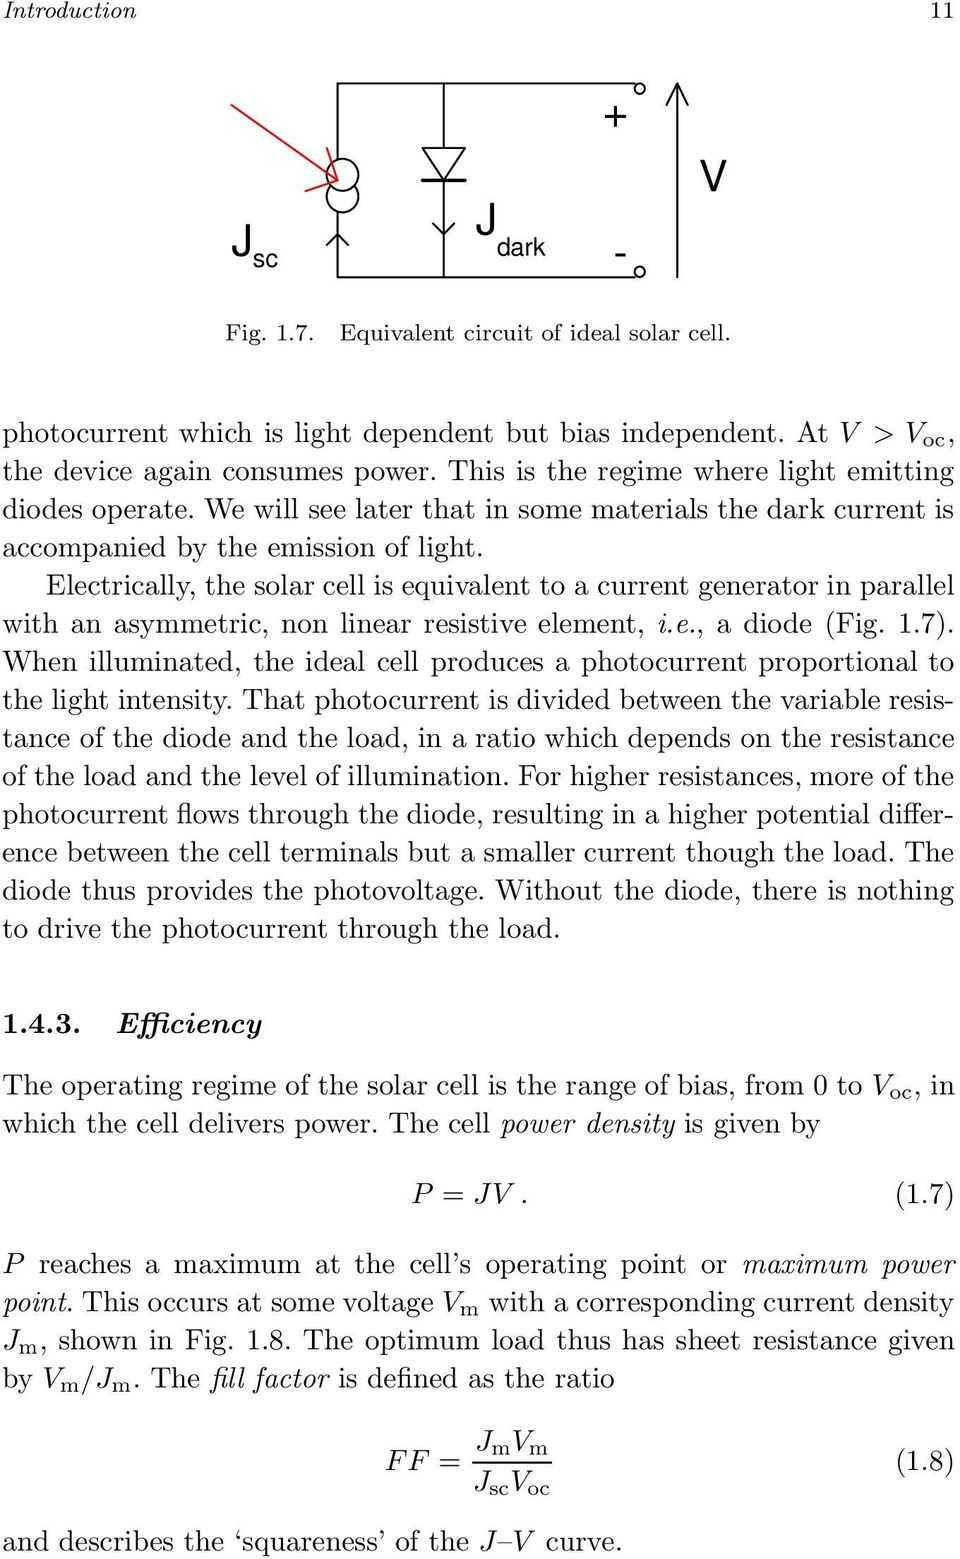 Chapter 1 Introduction Photons In Electrons Out The Photovoltaic Solar Cell Parallel Circuits Electrically Is Equivalent To A Current Generator With An Asymmetric